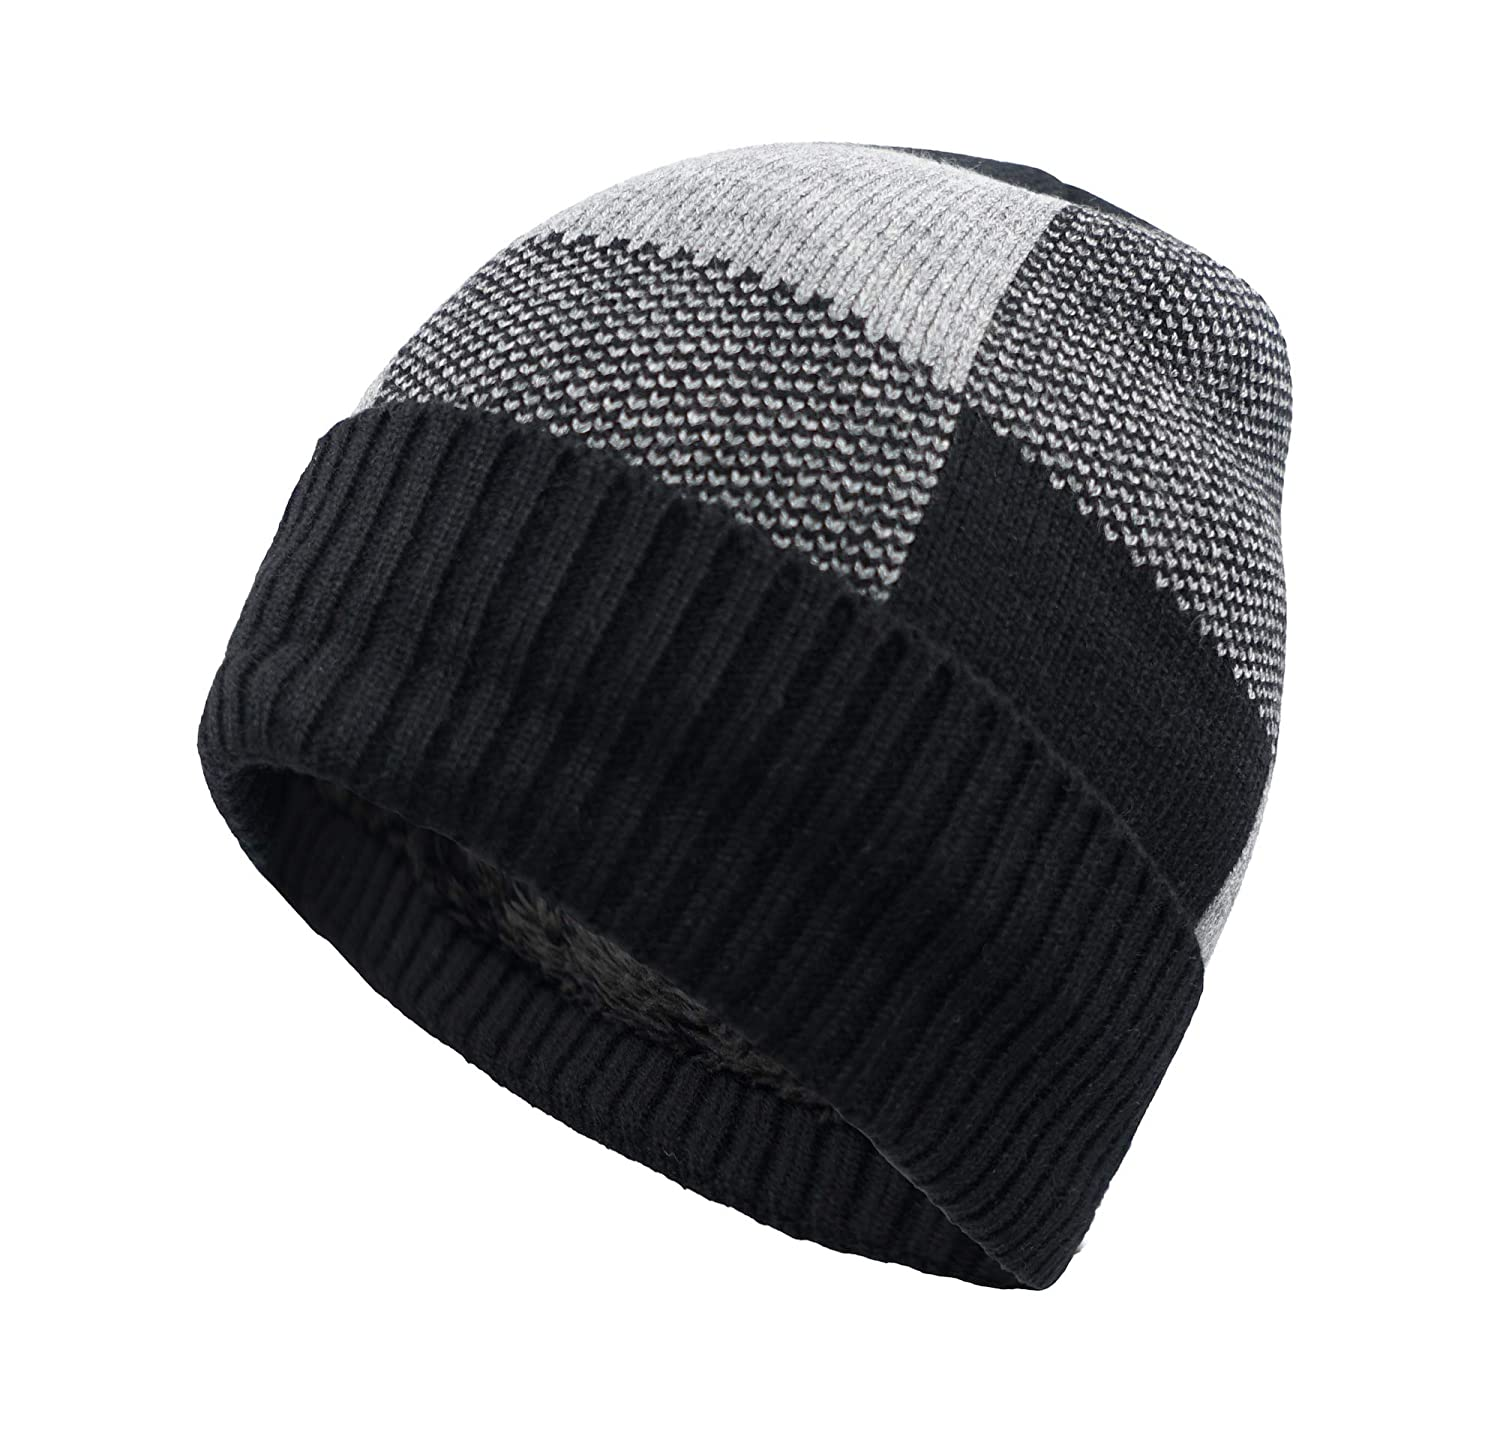 51eab9d44e6 Home Prefer Winter Warm Knitting Hats Cuff Beanie Hat Skull Caps for Men  Knit Beanie Daily Hat Black at Amazon Men s Clothing store